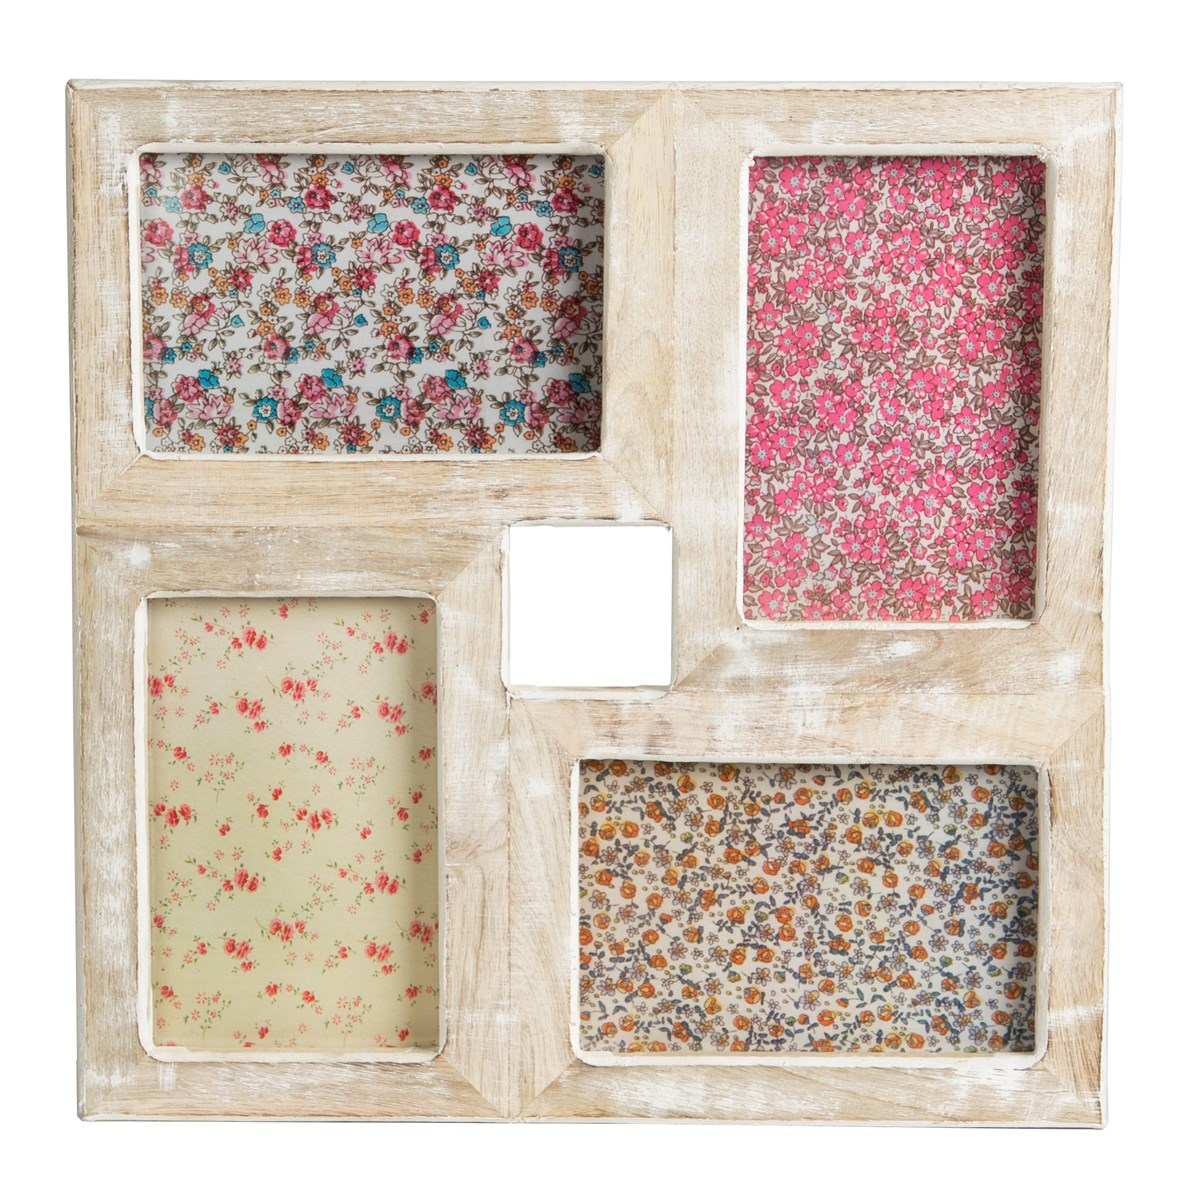 Square Collage Rustic Wood Photo Frame White Farmhouse Distressed | eBay